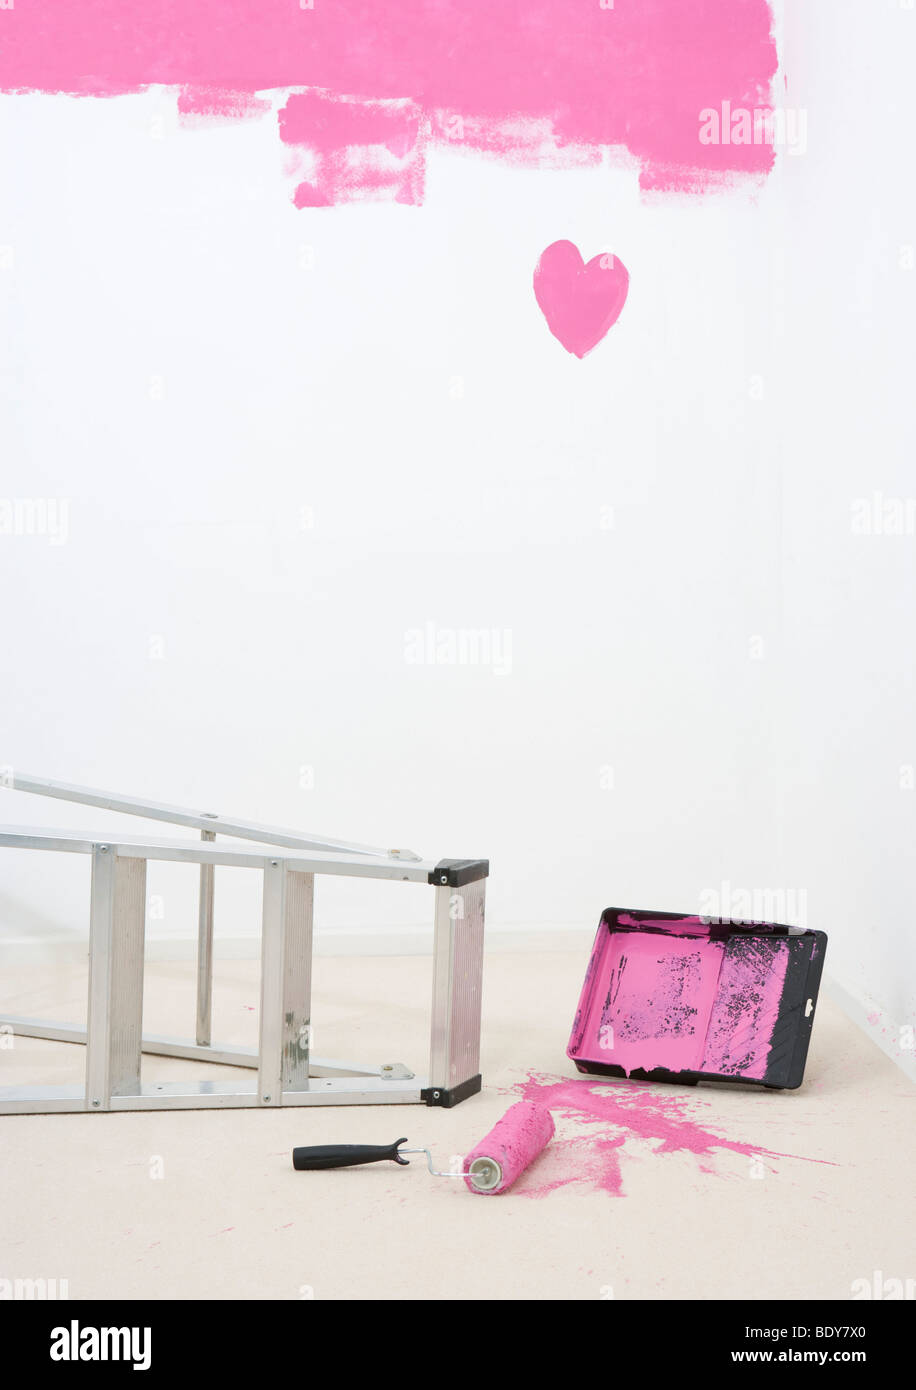 painted heart on wall and spilt paint - Stock Image